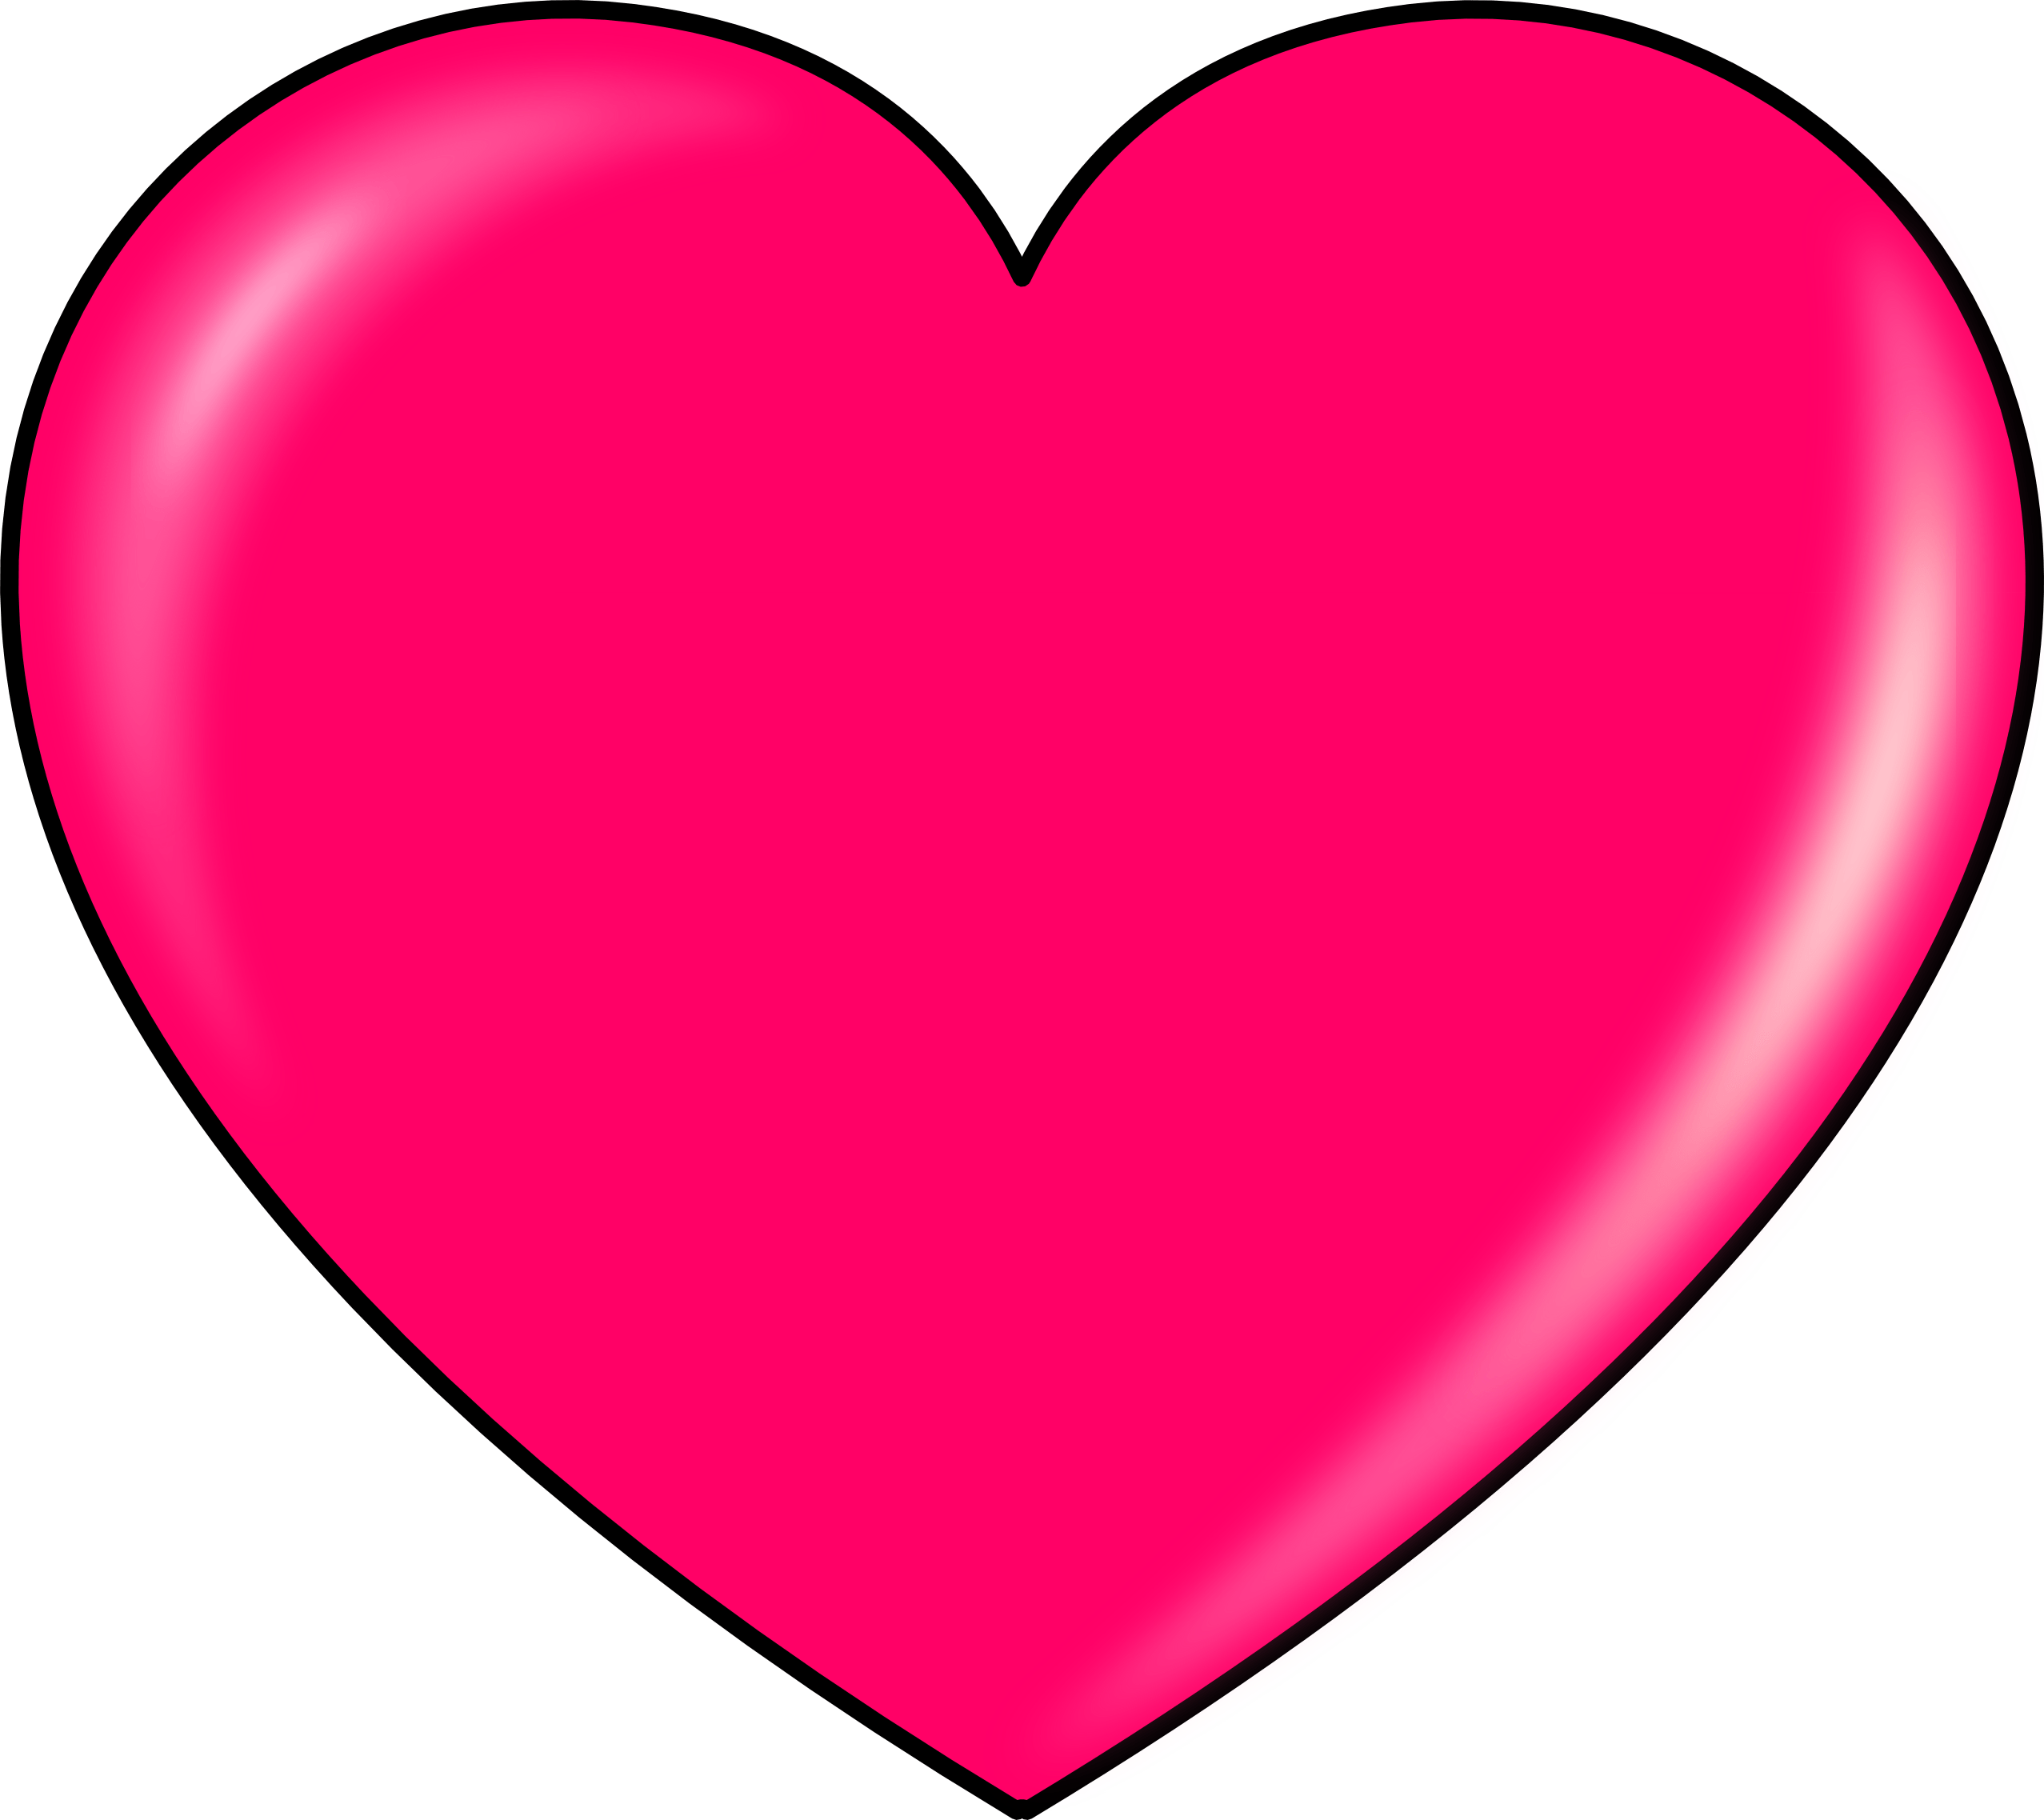 Heart Images Clipart · People · Hearts